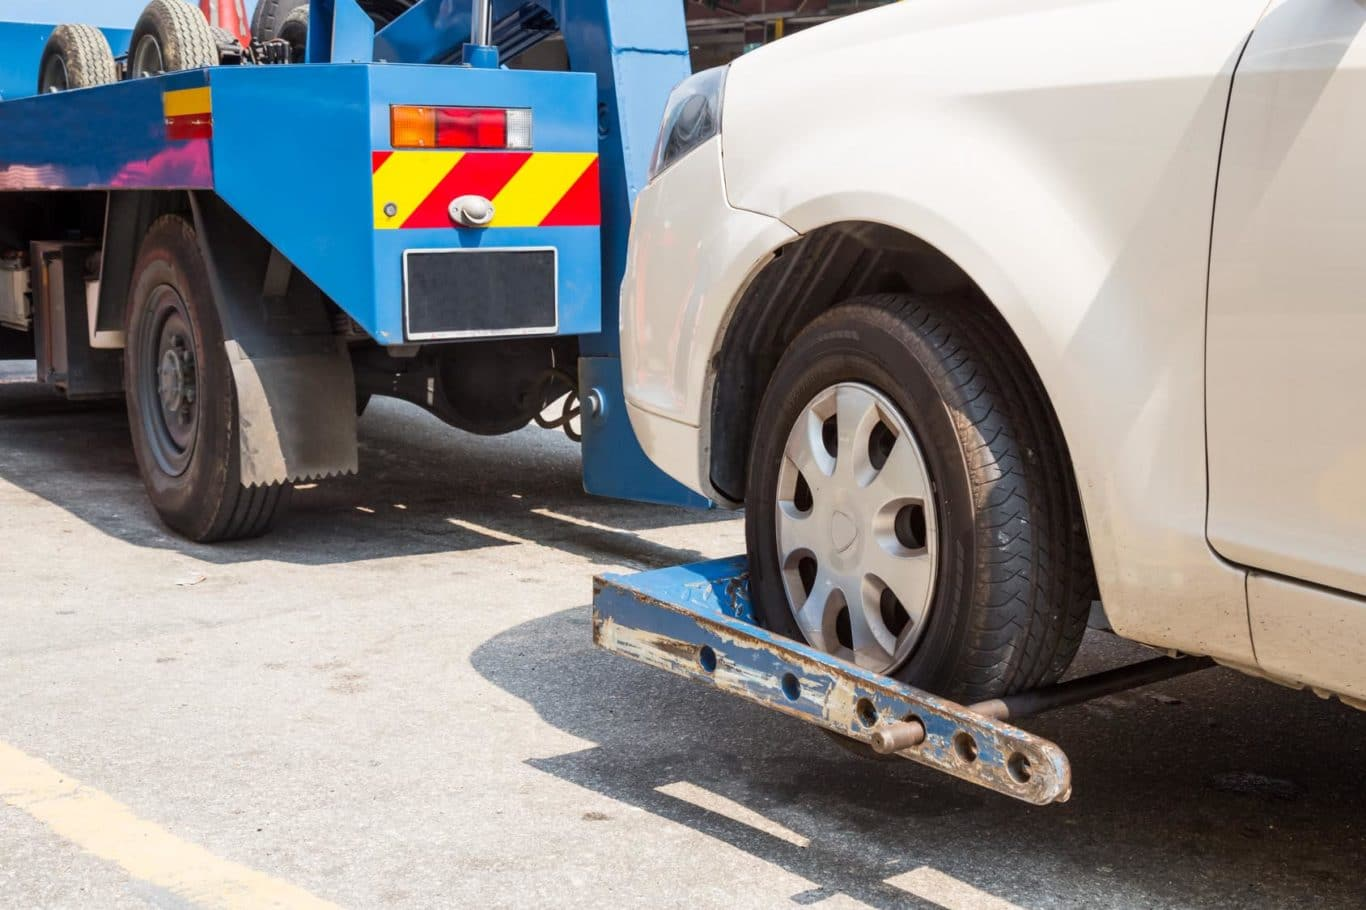 Dunboyne expert Car Towing services